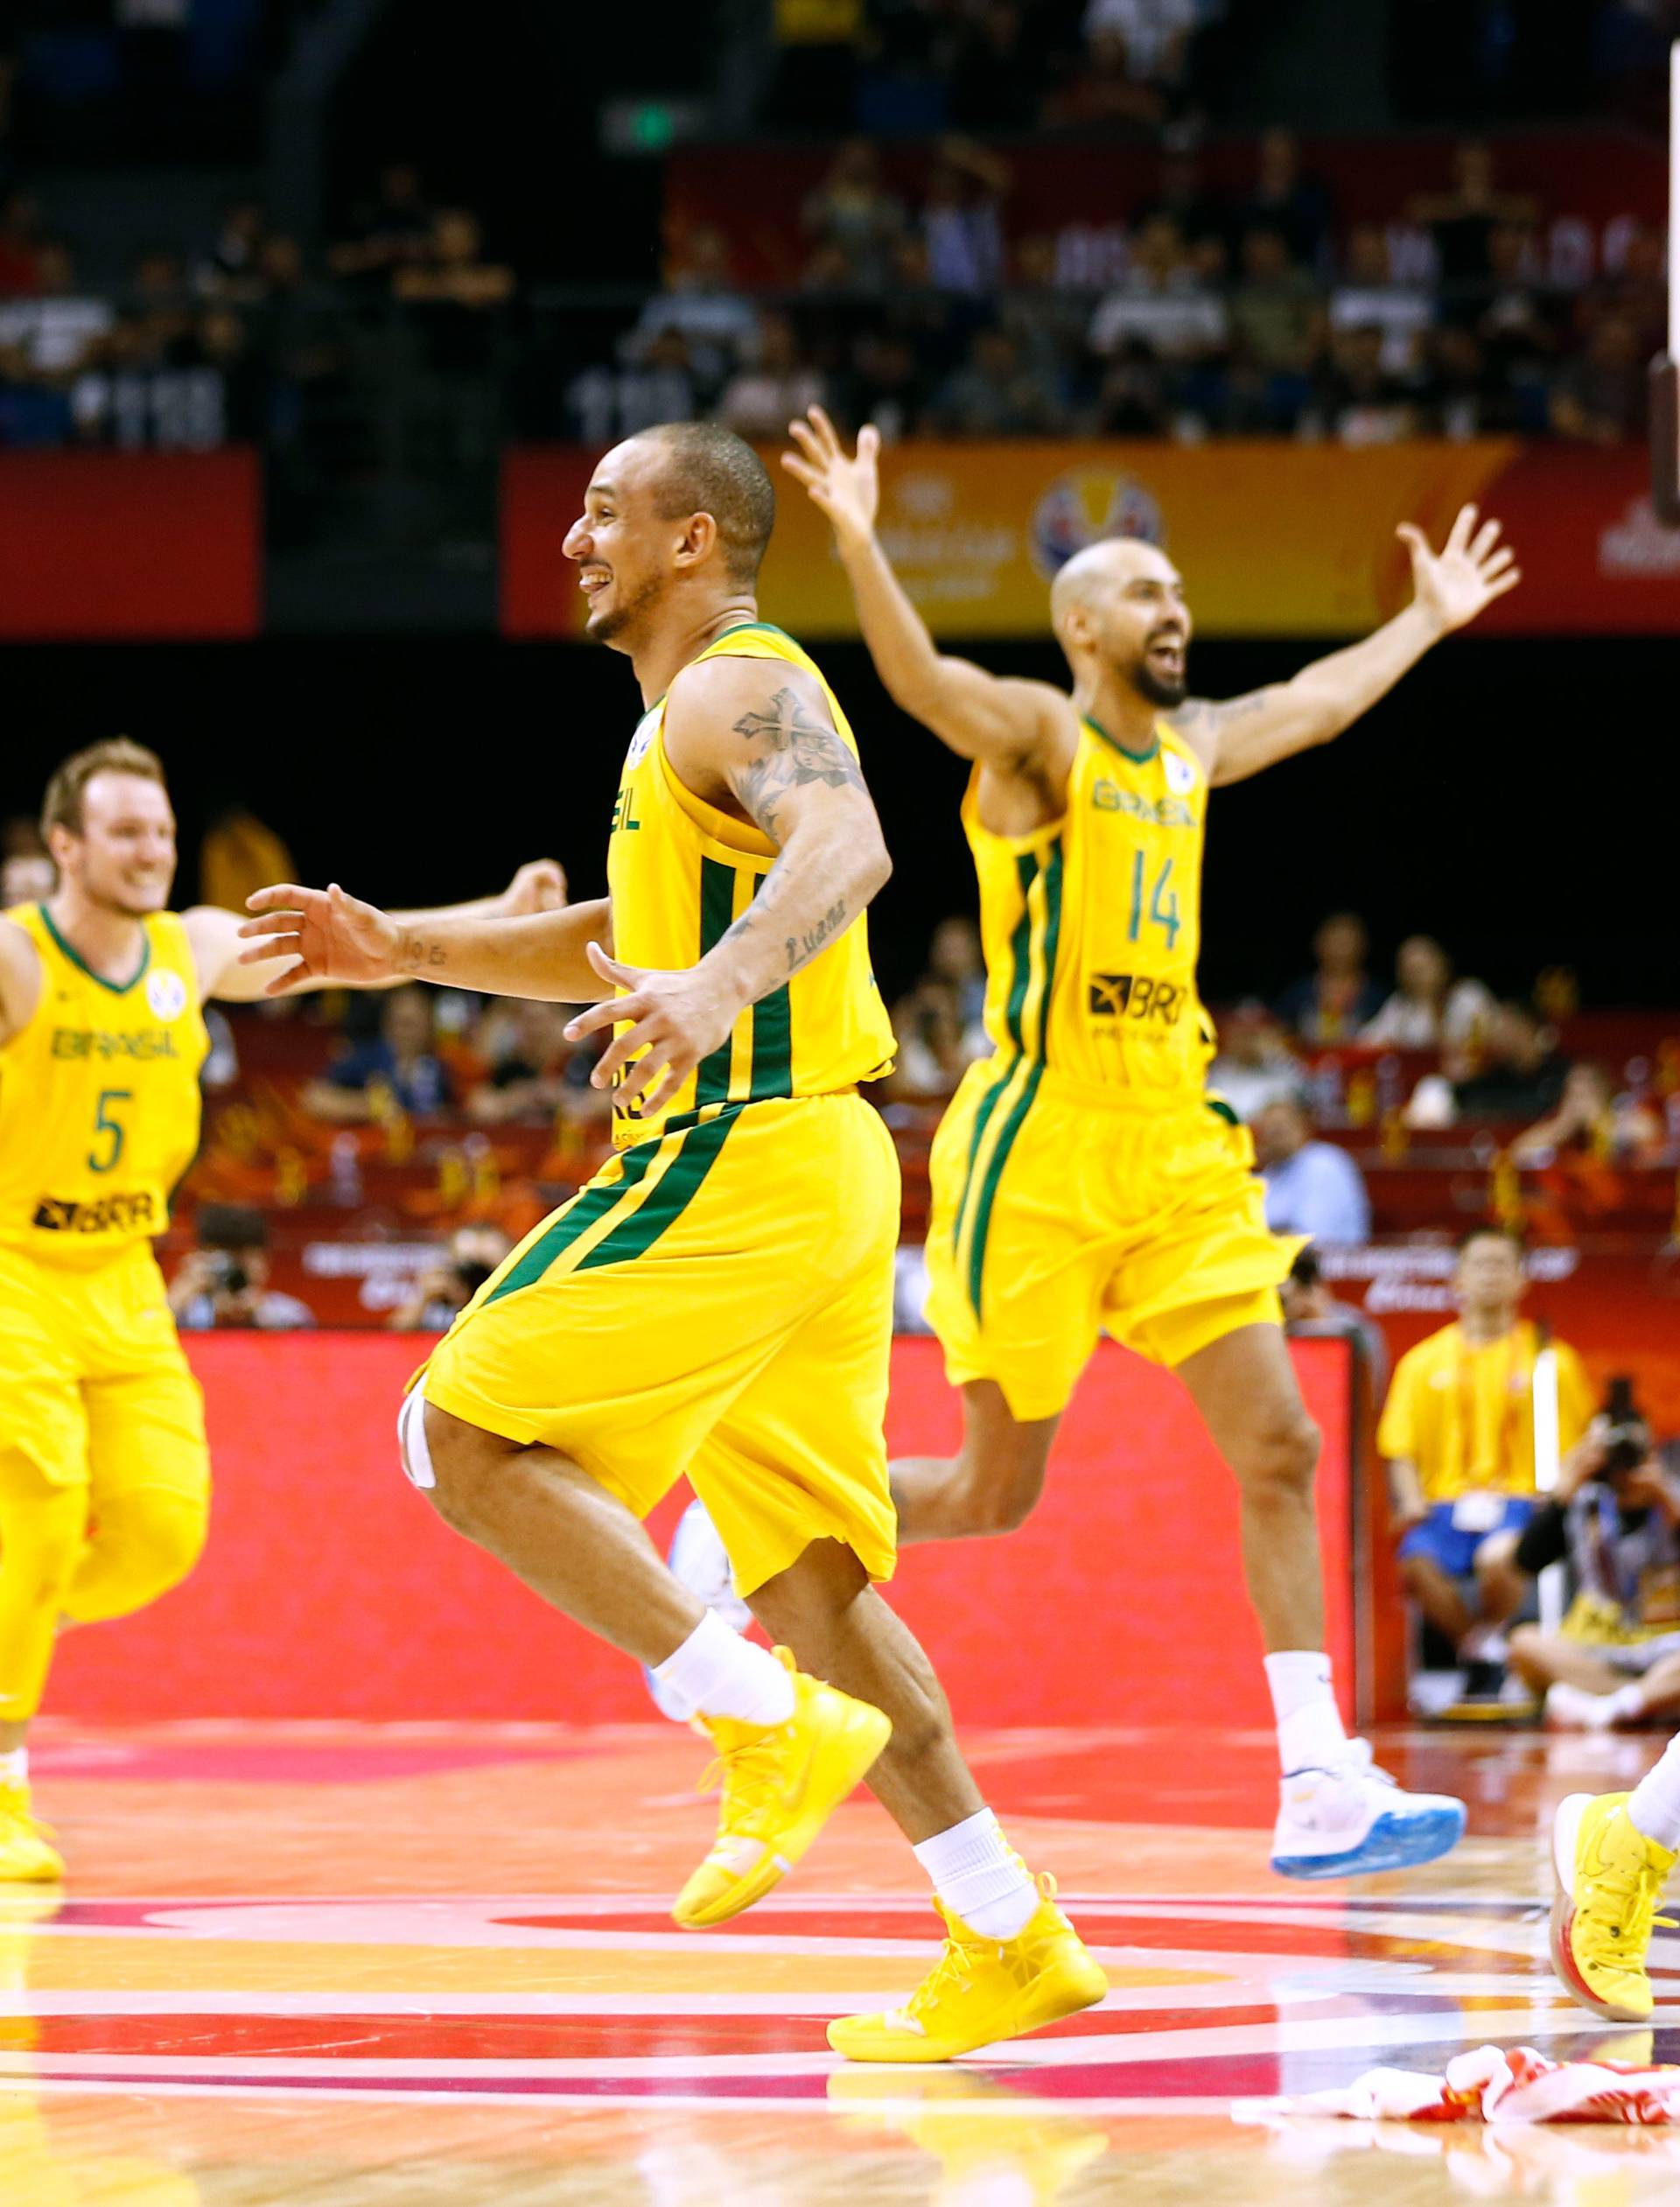 Basketball - FIBA World Cup - First Round - Group F - Brazil v Greece